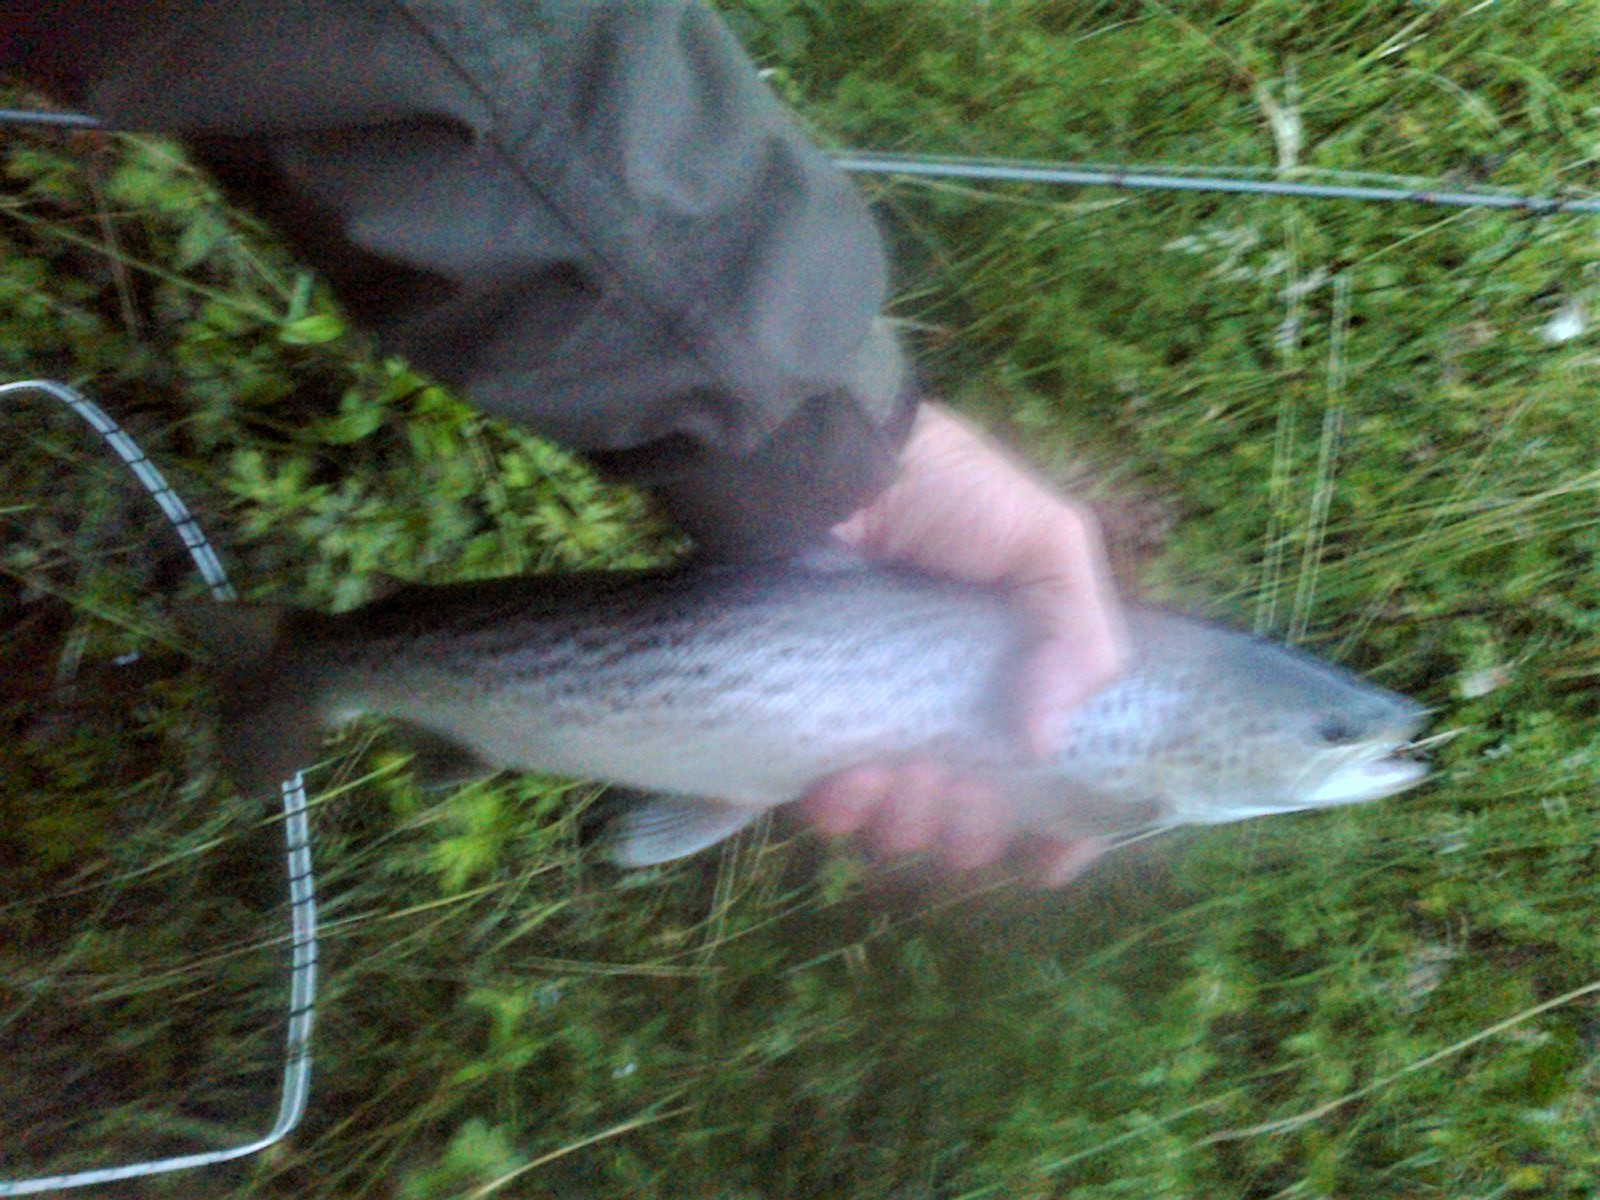 The secretary's share. From Jock Shaws pool at dusk safely returned. Lost another 2 in quick succession. Sea trout about 2lb on a size 8 Alexandra the fly on an intermediate line. River is clearing nicely. Others are reporting similar sized sea trout from other areas in the river.